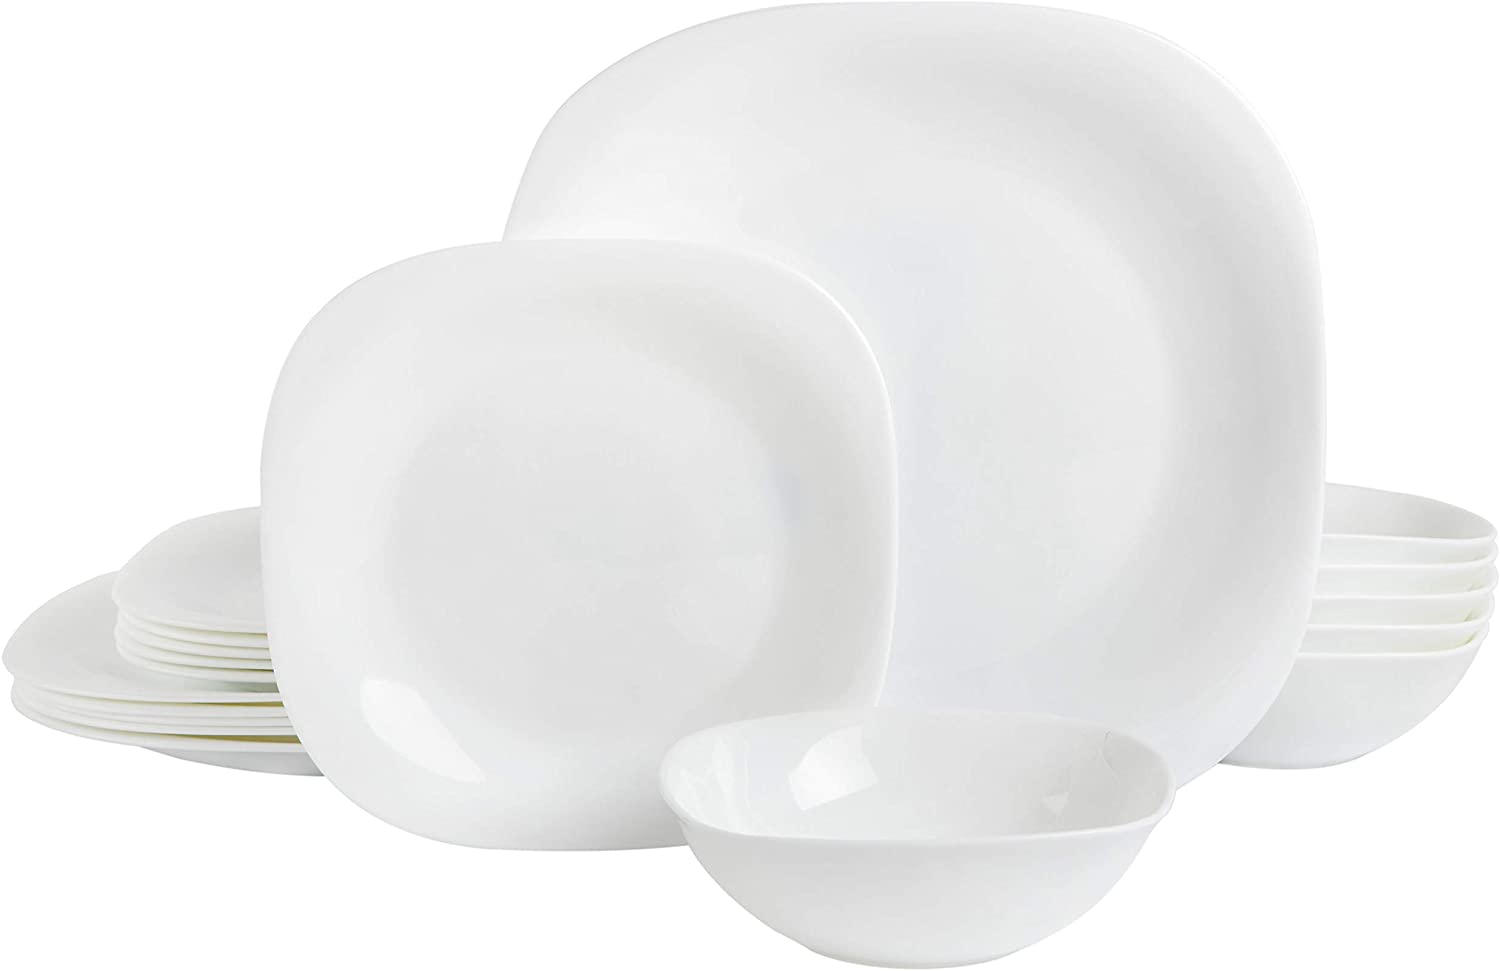 Gibson Home Ultra Break-Resistant Dinnerware Sets, Square: Service for 6 (18pcs), Opal Glass